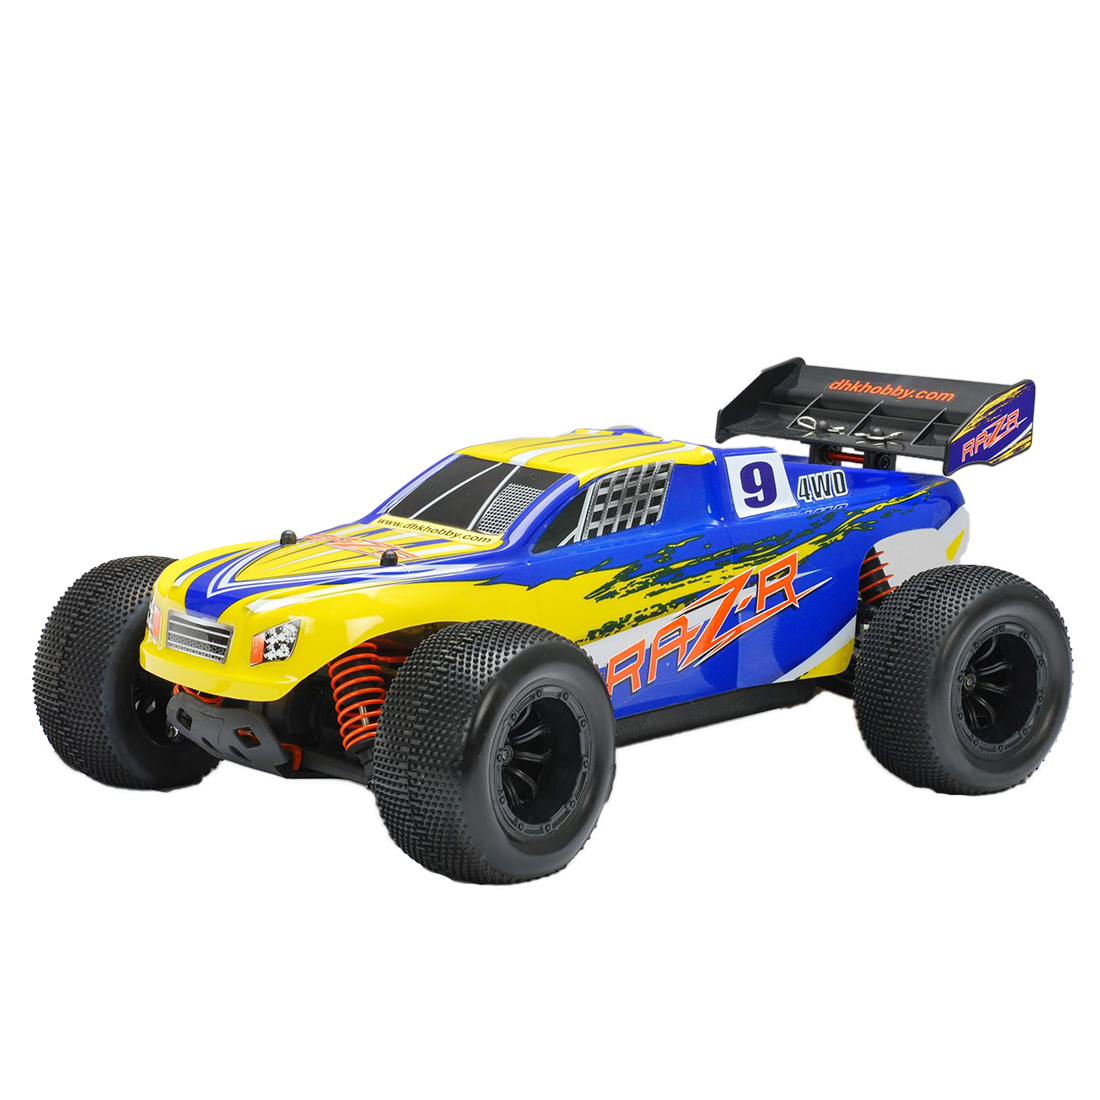 DHK 8134 RAZ-R 1/10 4WD 32kph 60A Brushed Racing Short Course Truck 4WD RC Car - RTR Version AU Plug